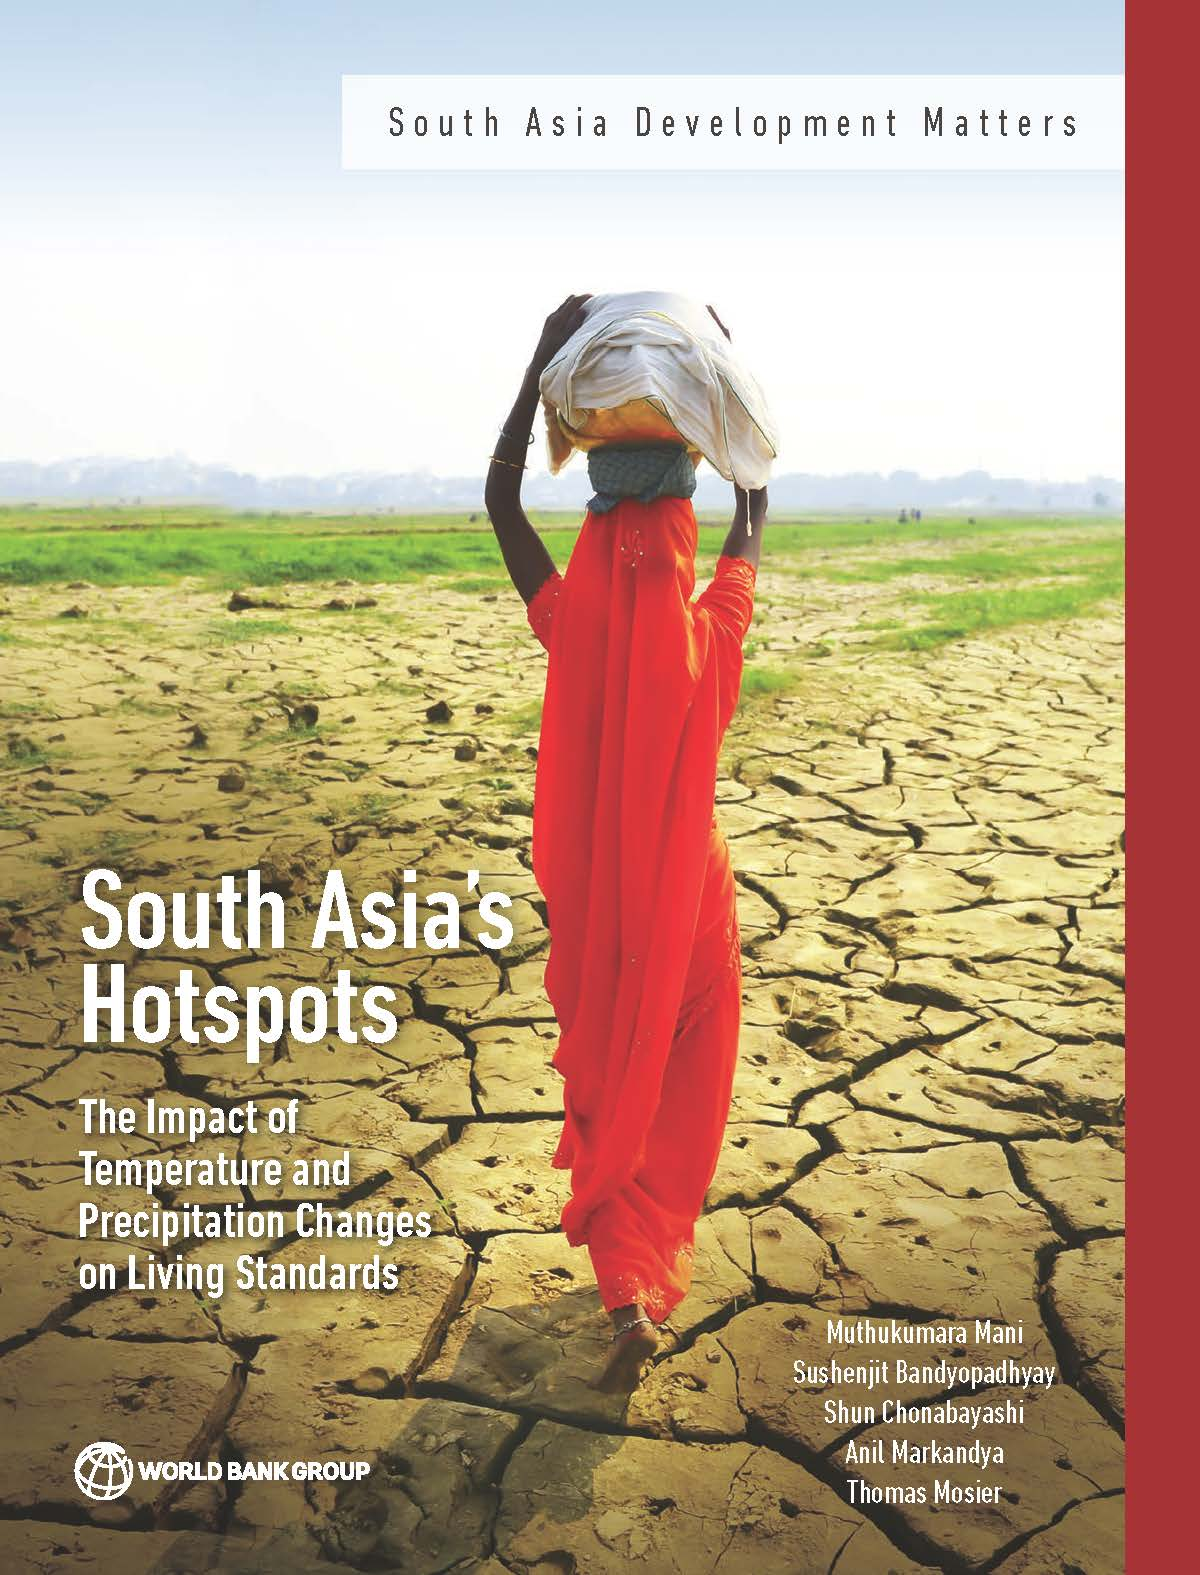 South Asia's Hotspots : Impacts of Temperature and Precipitation Changes on Living Standards